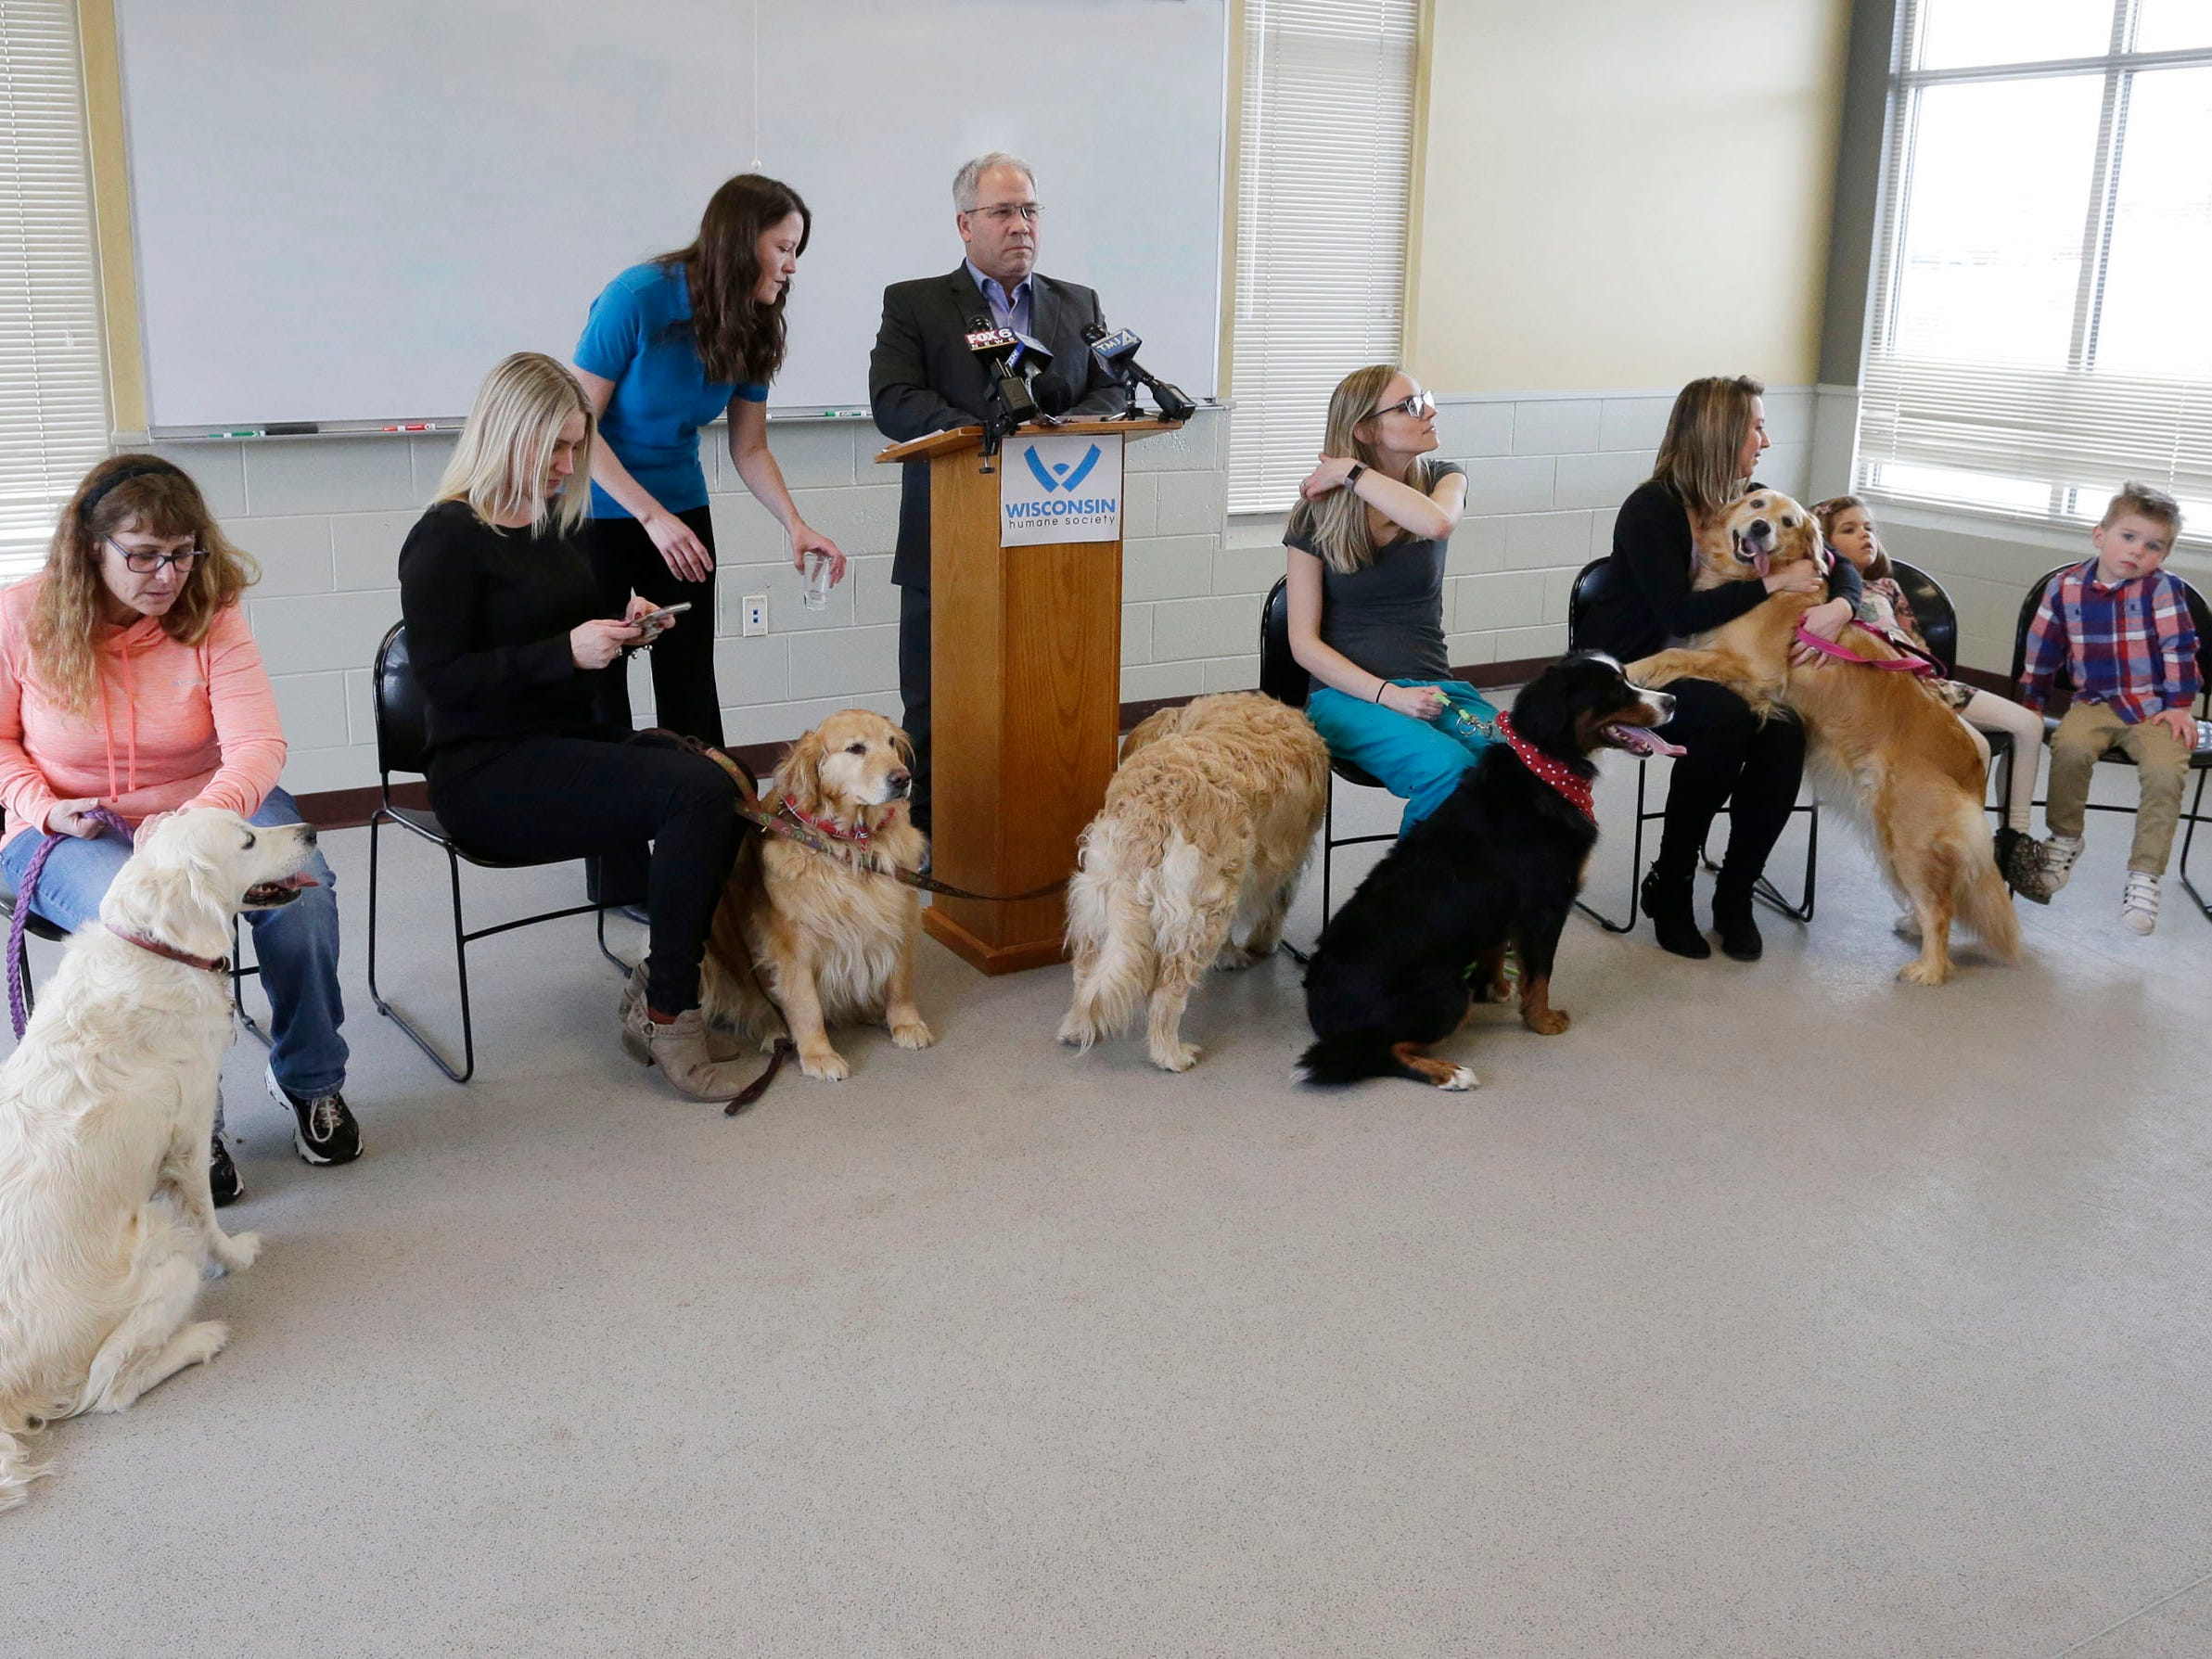 An overall of the Kinship Companions dogs press conference at the Wisconsin Humane Society Ozaukee Campus, Thursday, March 14, 2109, in Saukville, Wis. The dogs, who will all eventually be adopted out, were part of the 36 live dogs that were seized in 2017 from Kinship Companions, a kennel that has been since shut down.